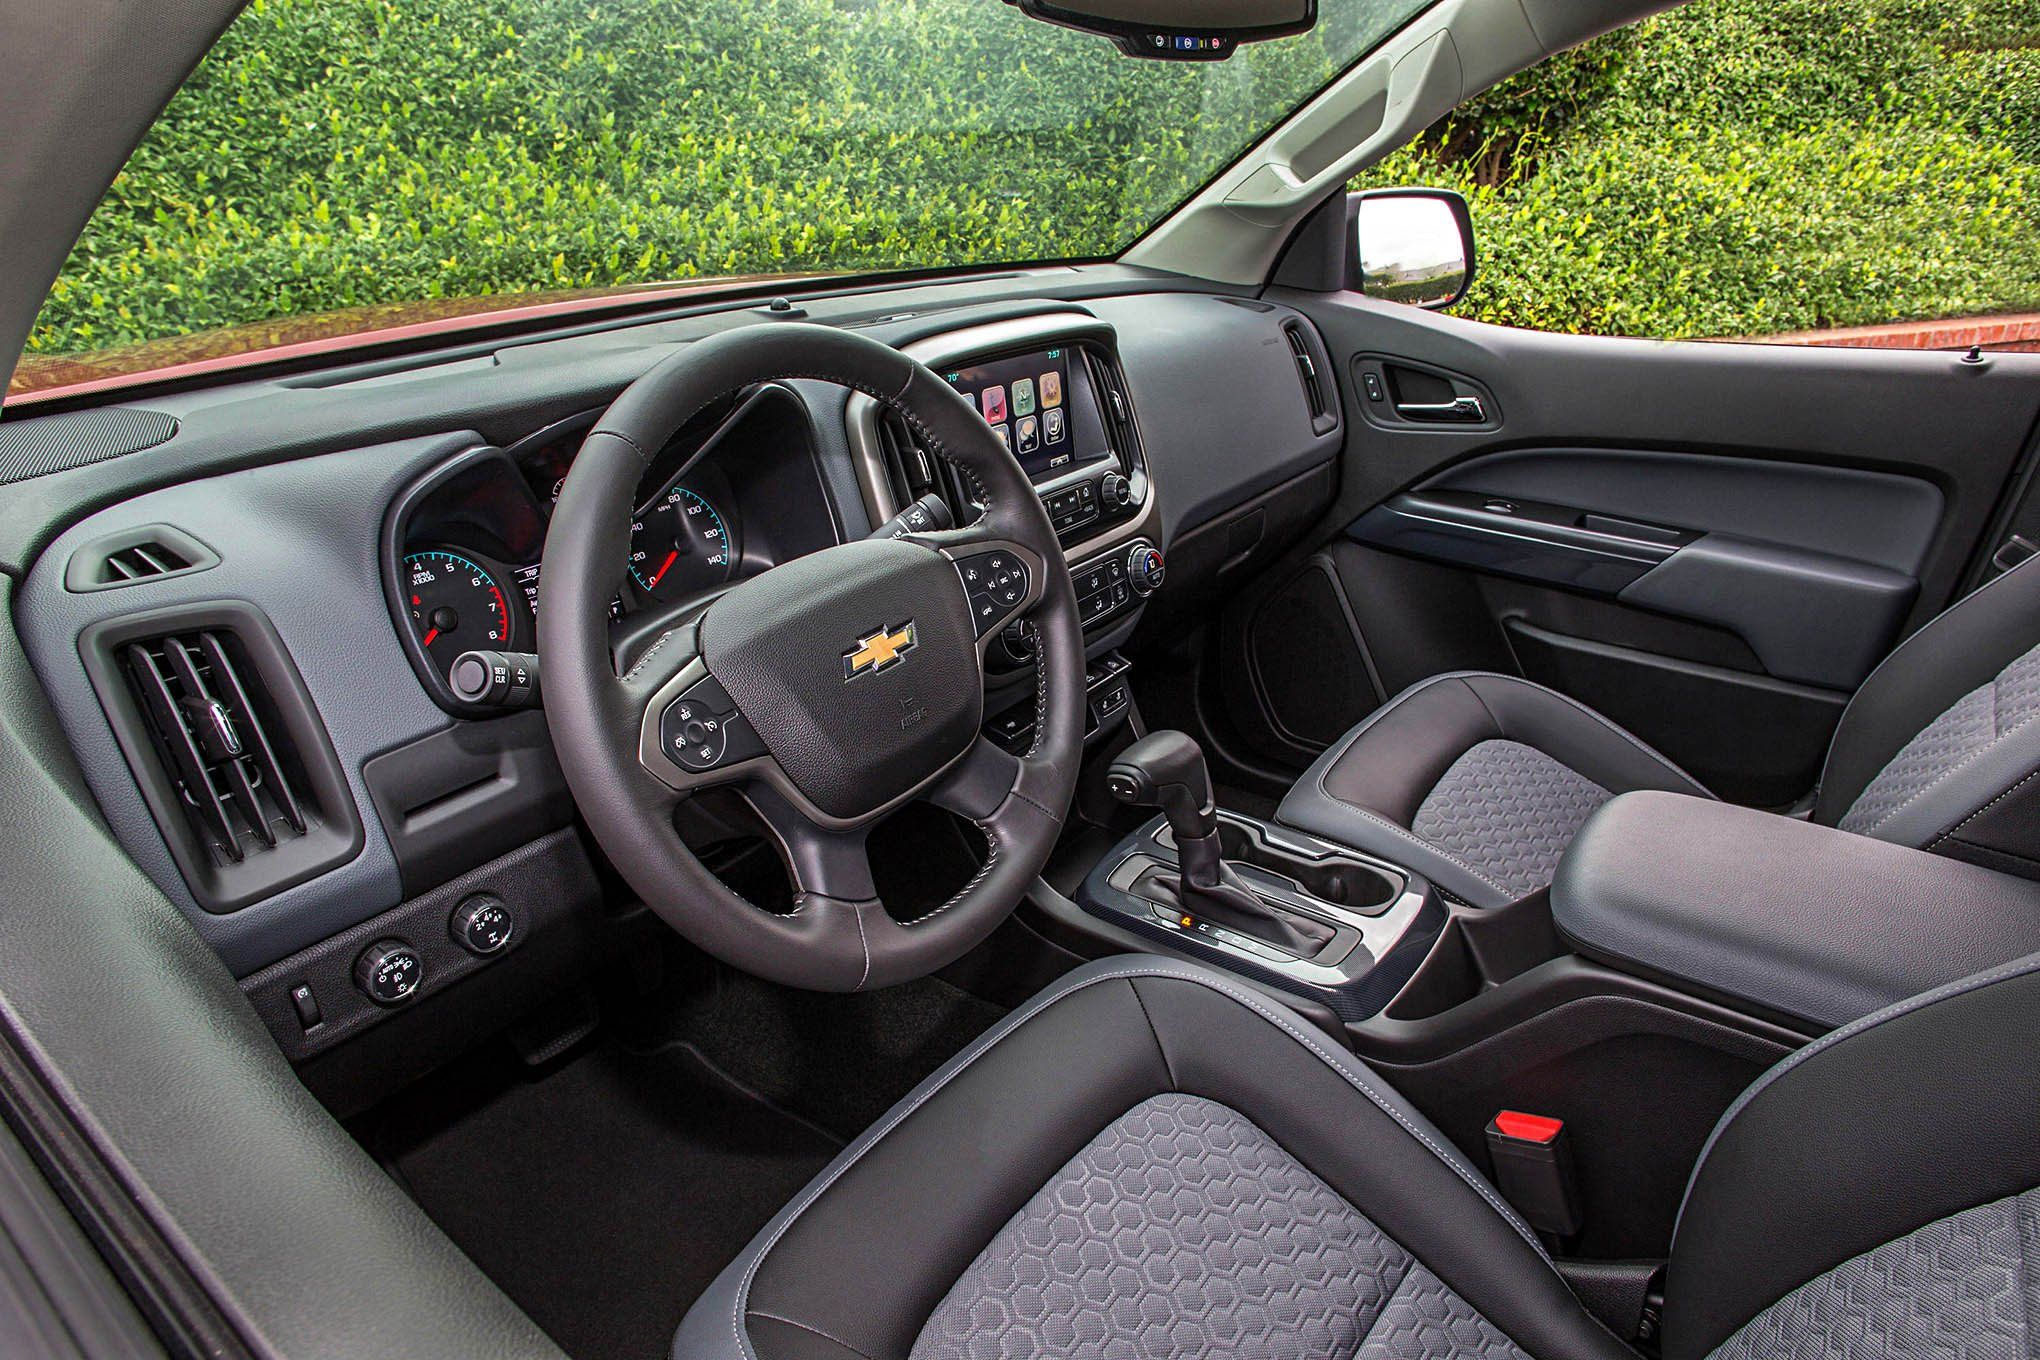 2021 Chevy Colarado Diesel Price And Release Date In 2020 Chevy